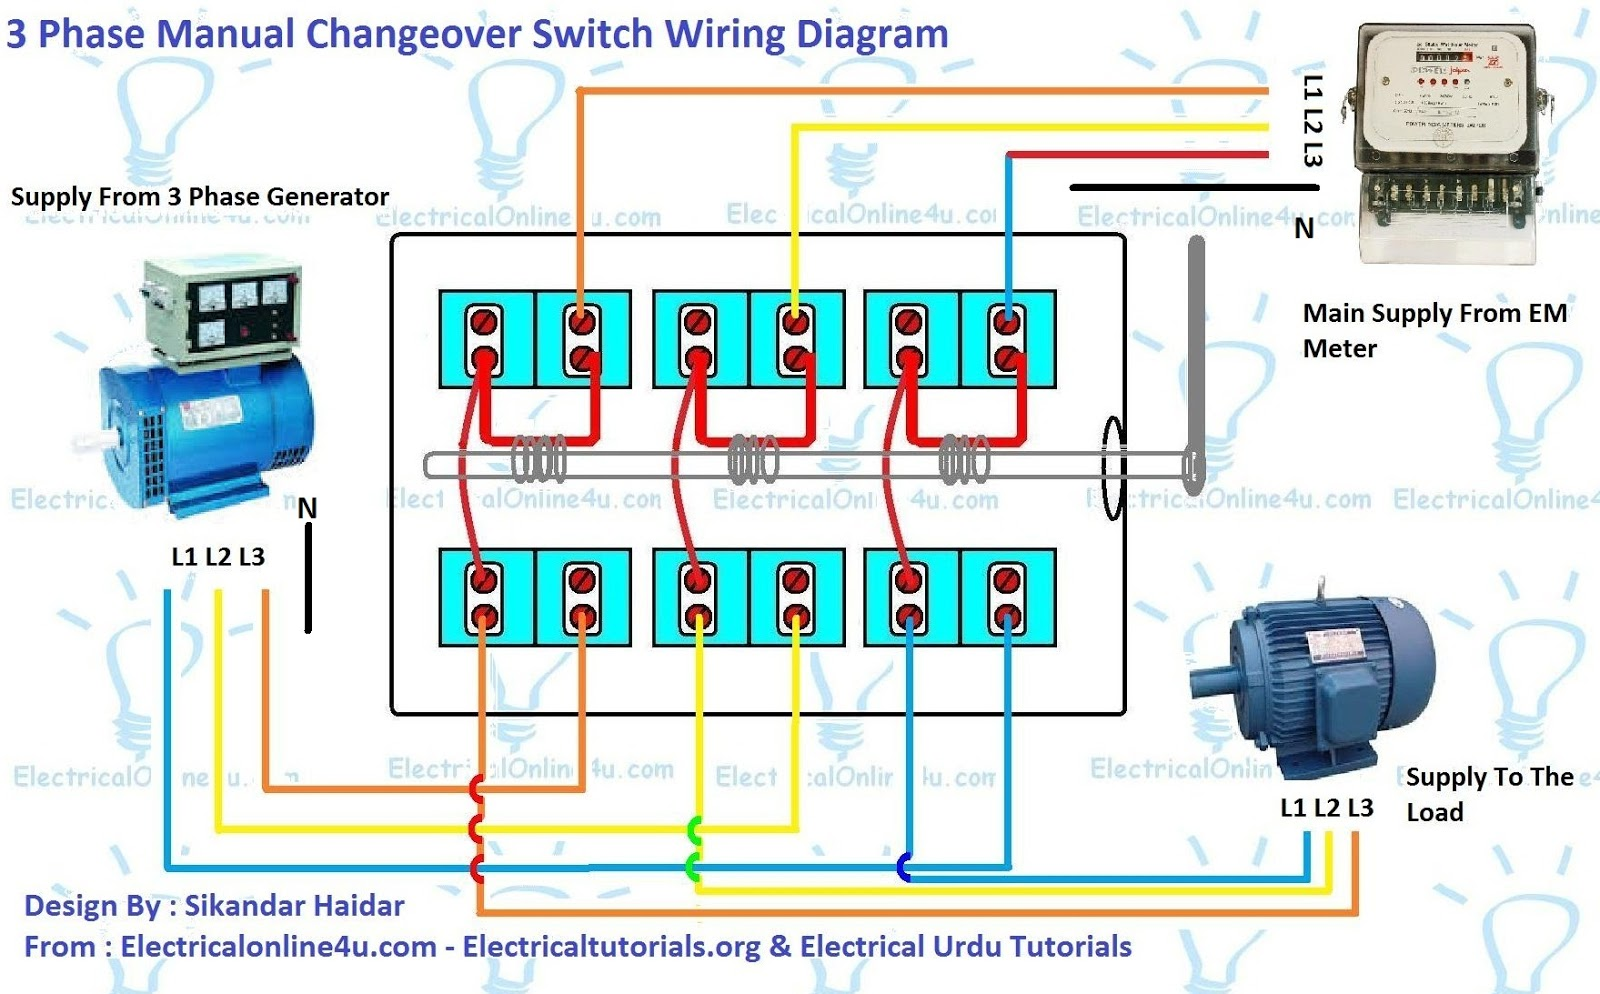 hight resolution of 3 phase manual changeover switch wiring diagram for yamaha g9 wiring diagram 1990 yamaha golf